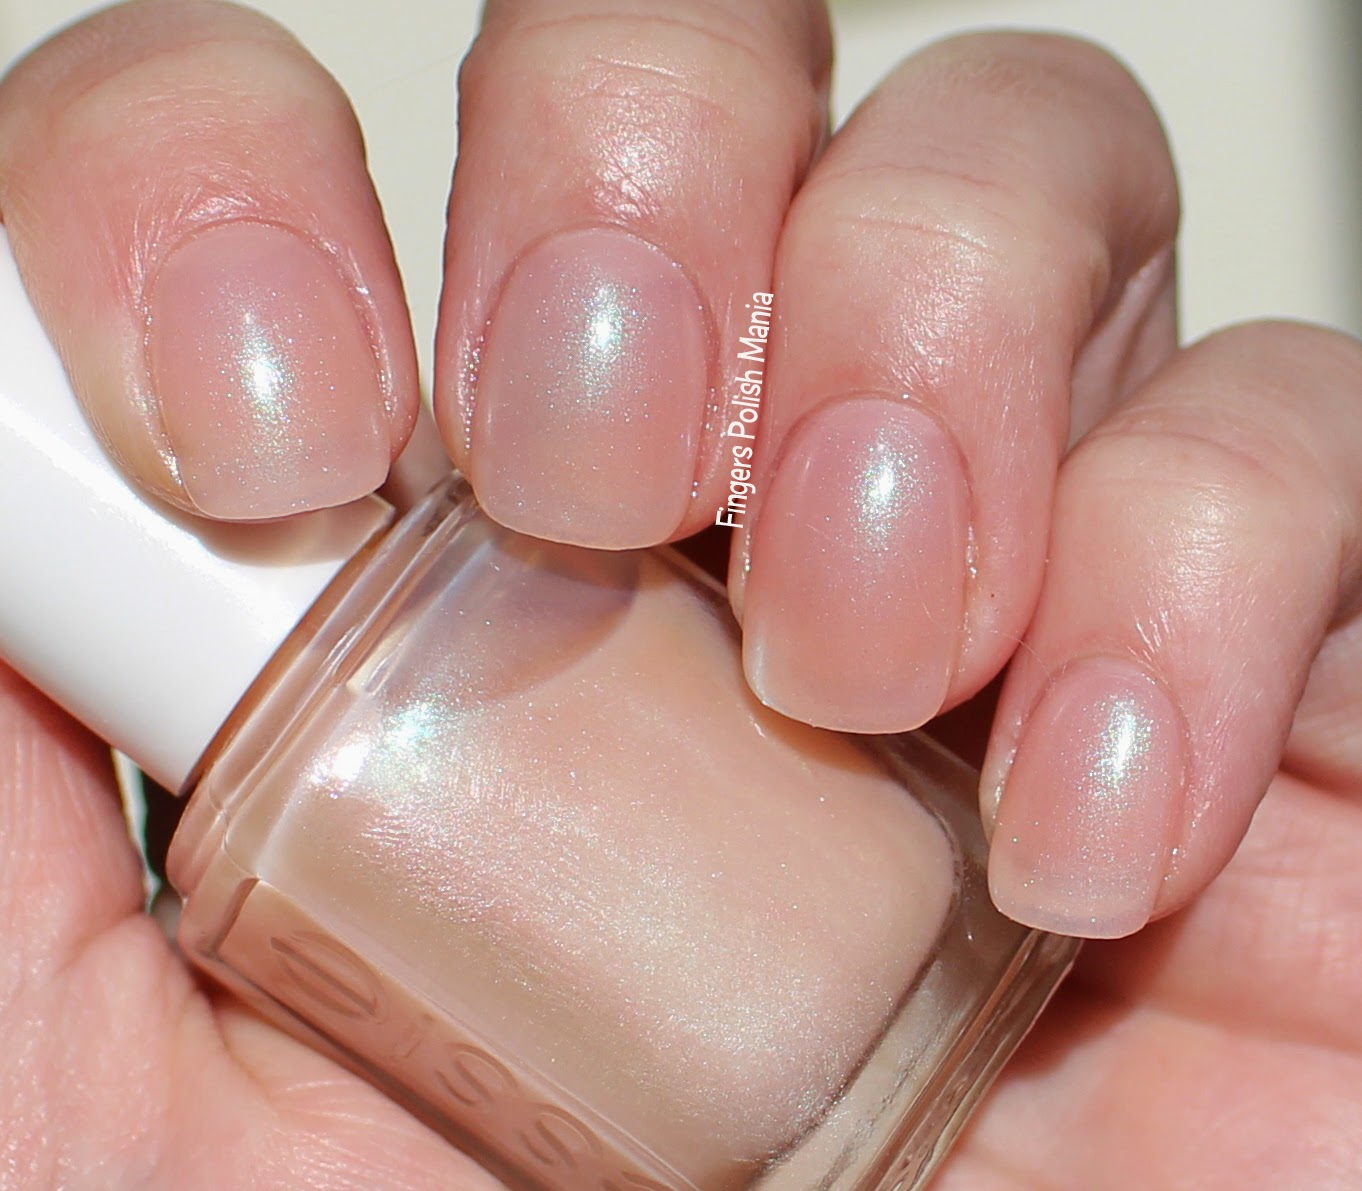 fingers polish mania: Essie Nude Beach, Classic French